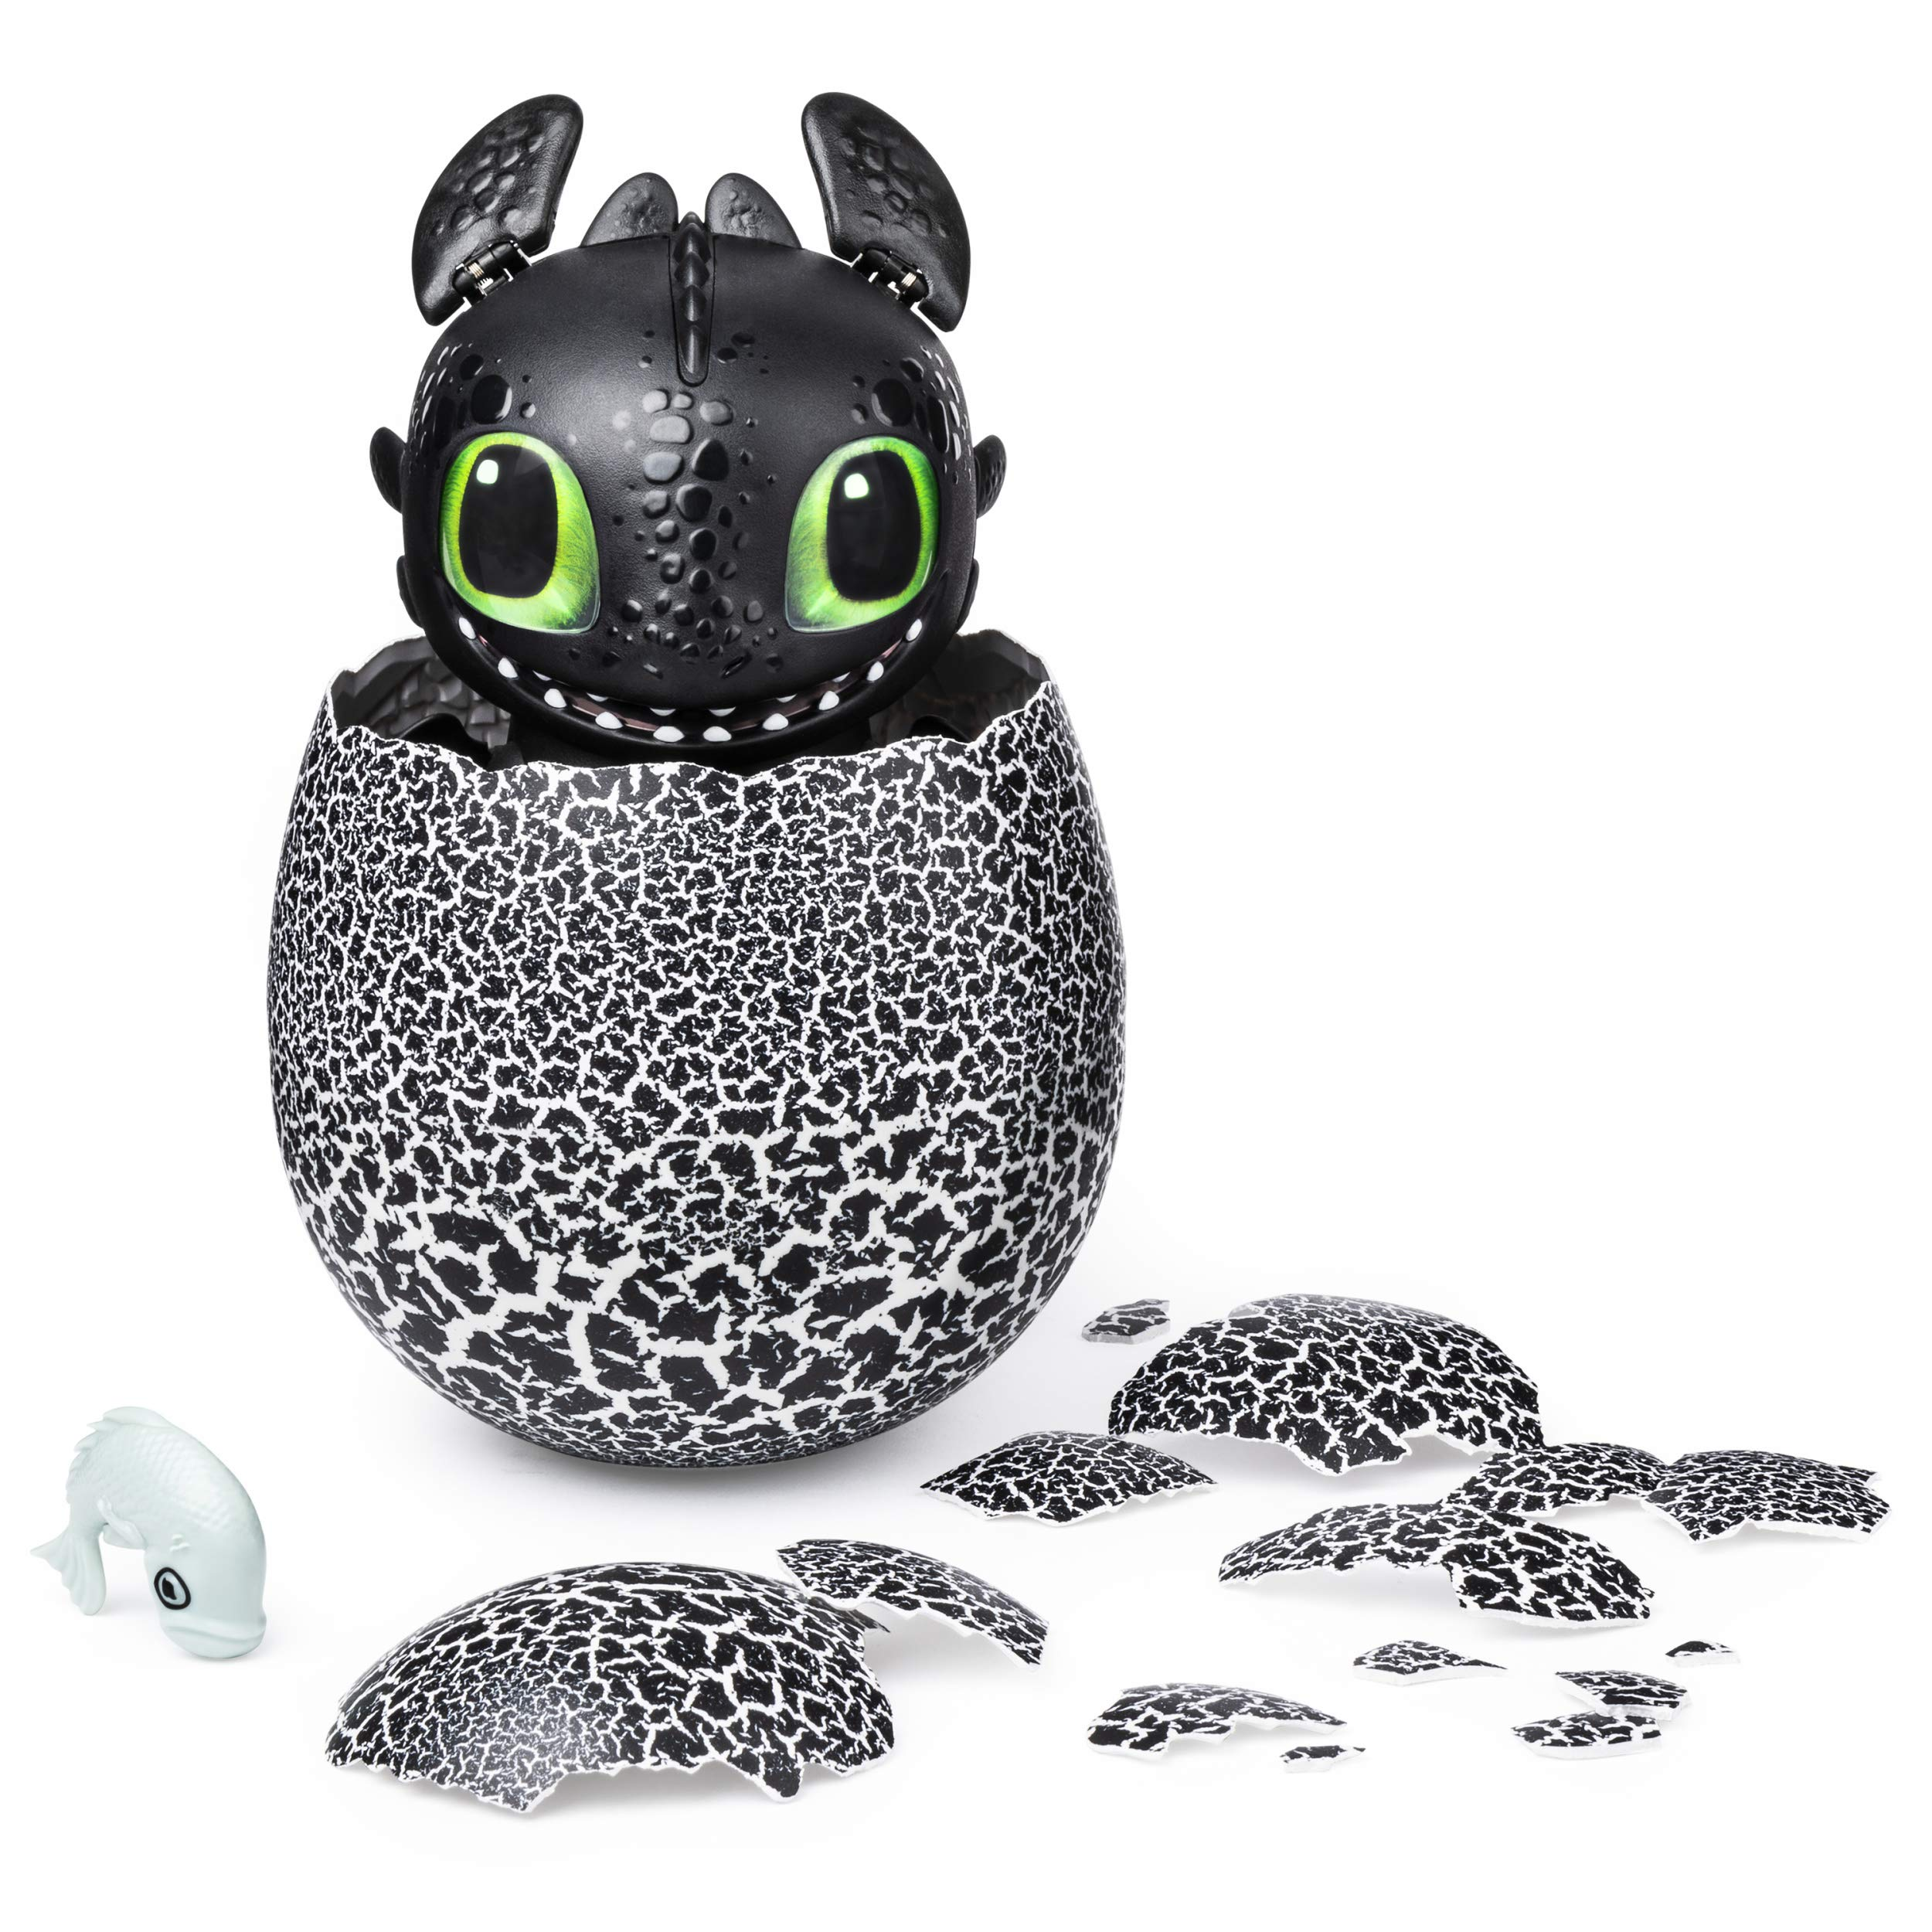 Dreamworks Dragons, Hatching Toothless Interactive Baby Dragon with Sounds, for Kids Aged 5 & Up by Dreamworks Dragons